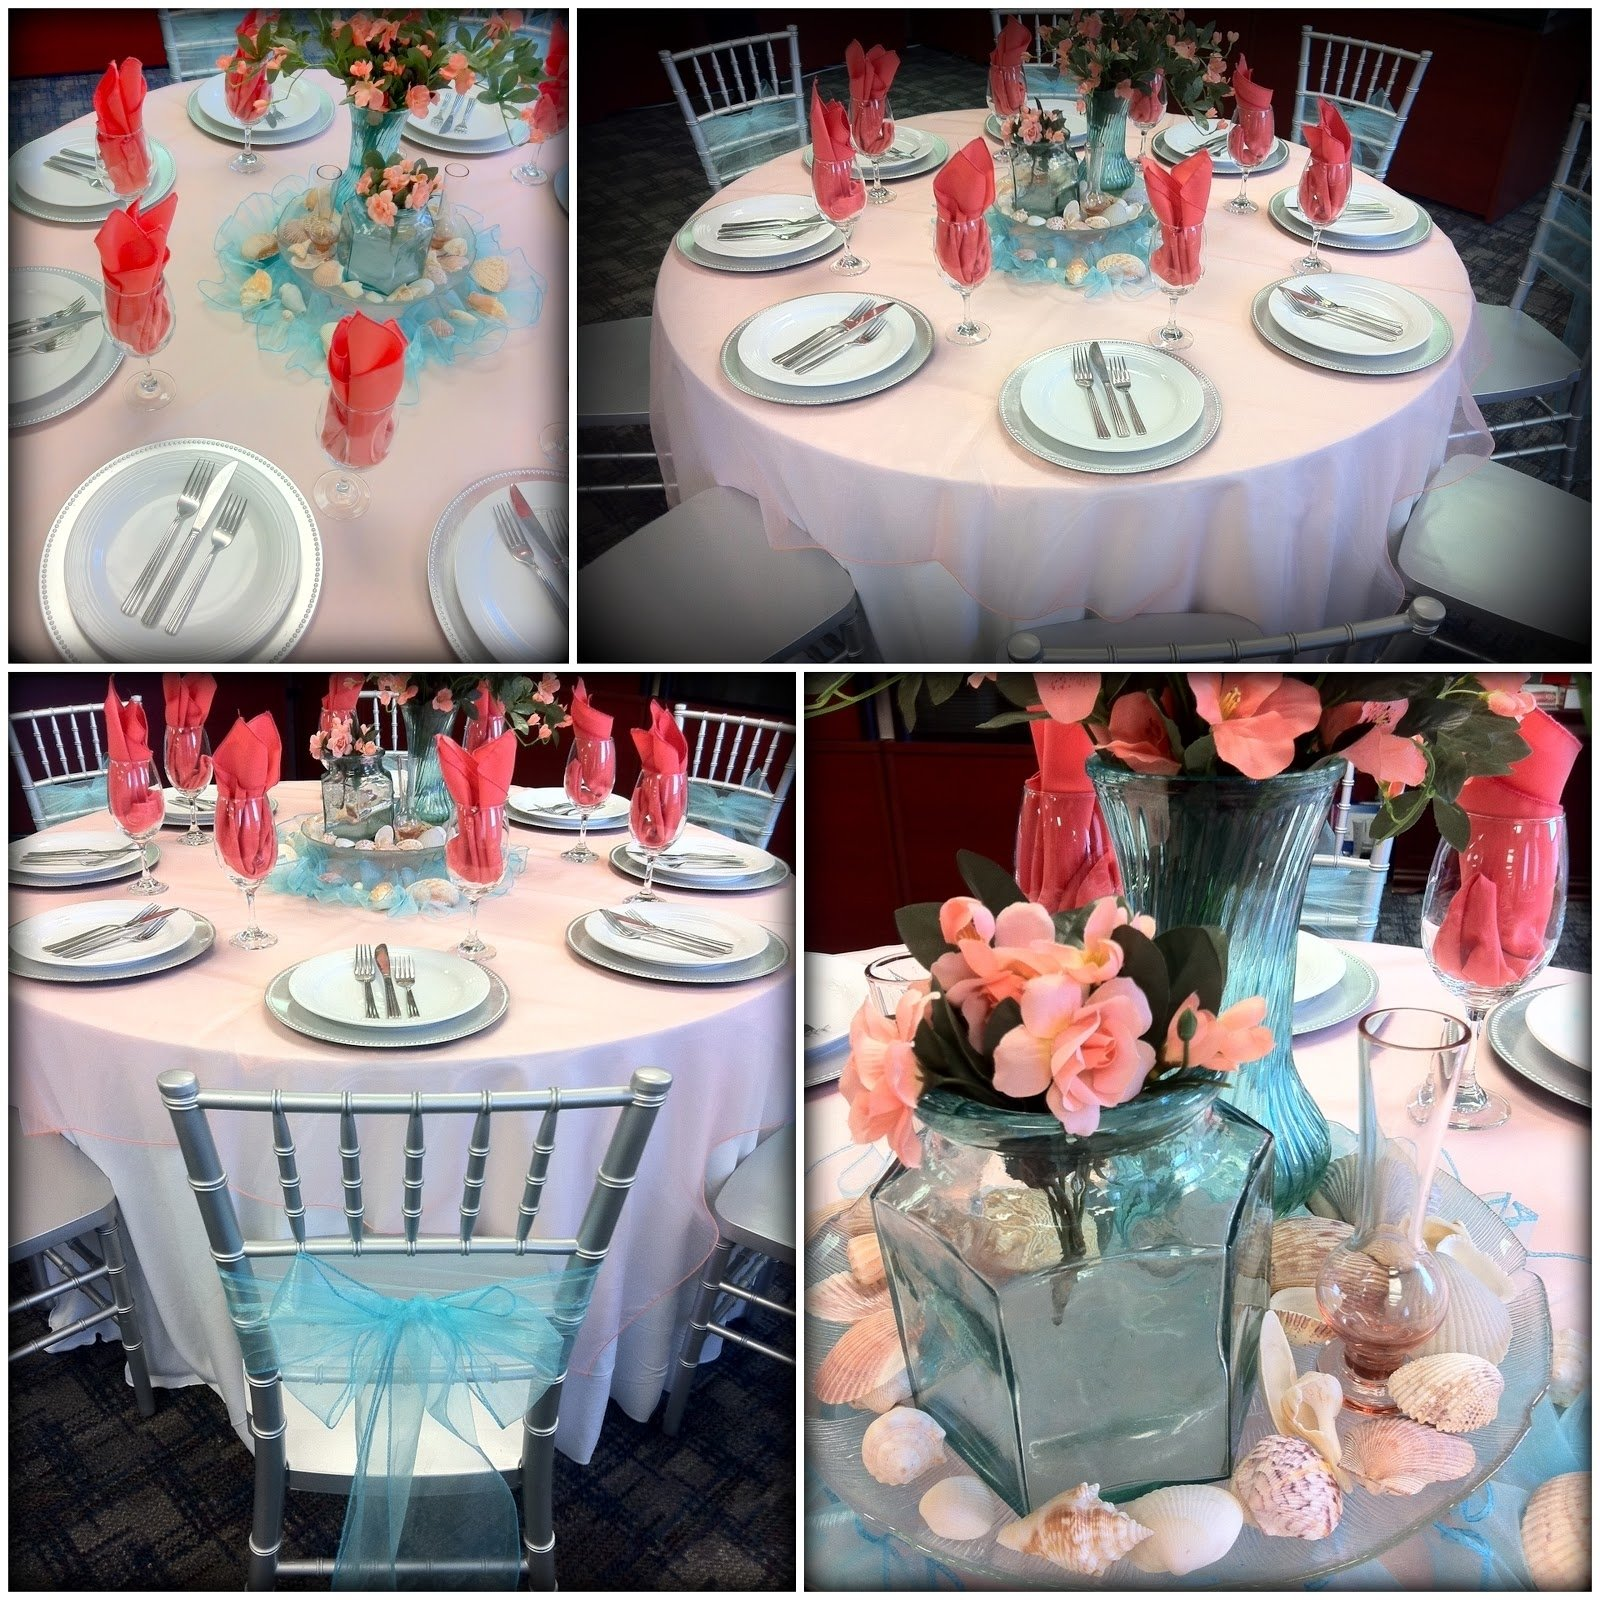 10 Trendy Coral And Teal Wedding Ideas coral and aqua decor coral and turquoise wedding ideas party 2020